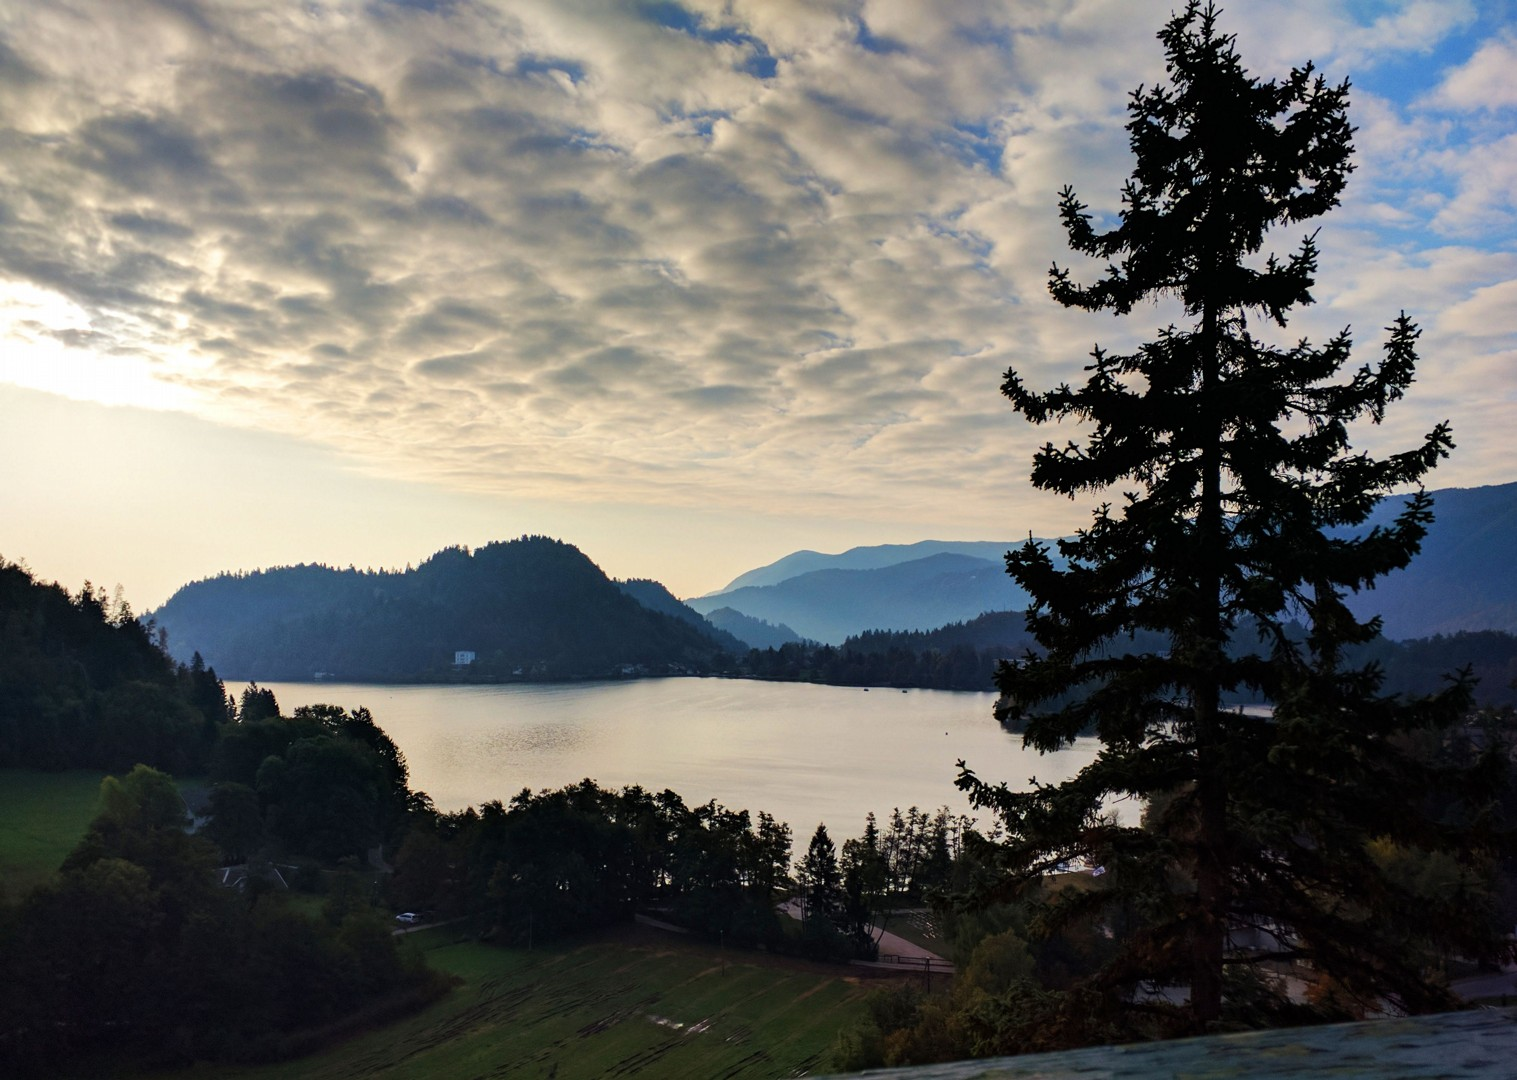 mount-vogel-leisure-cycling-holiday-slovenia-highlights-of-lake-bled.jpg - Slovenia - Highlights of Lake Bled - Self-Guided Leisure Cycling Holiday - Leisure Cycling